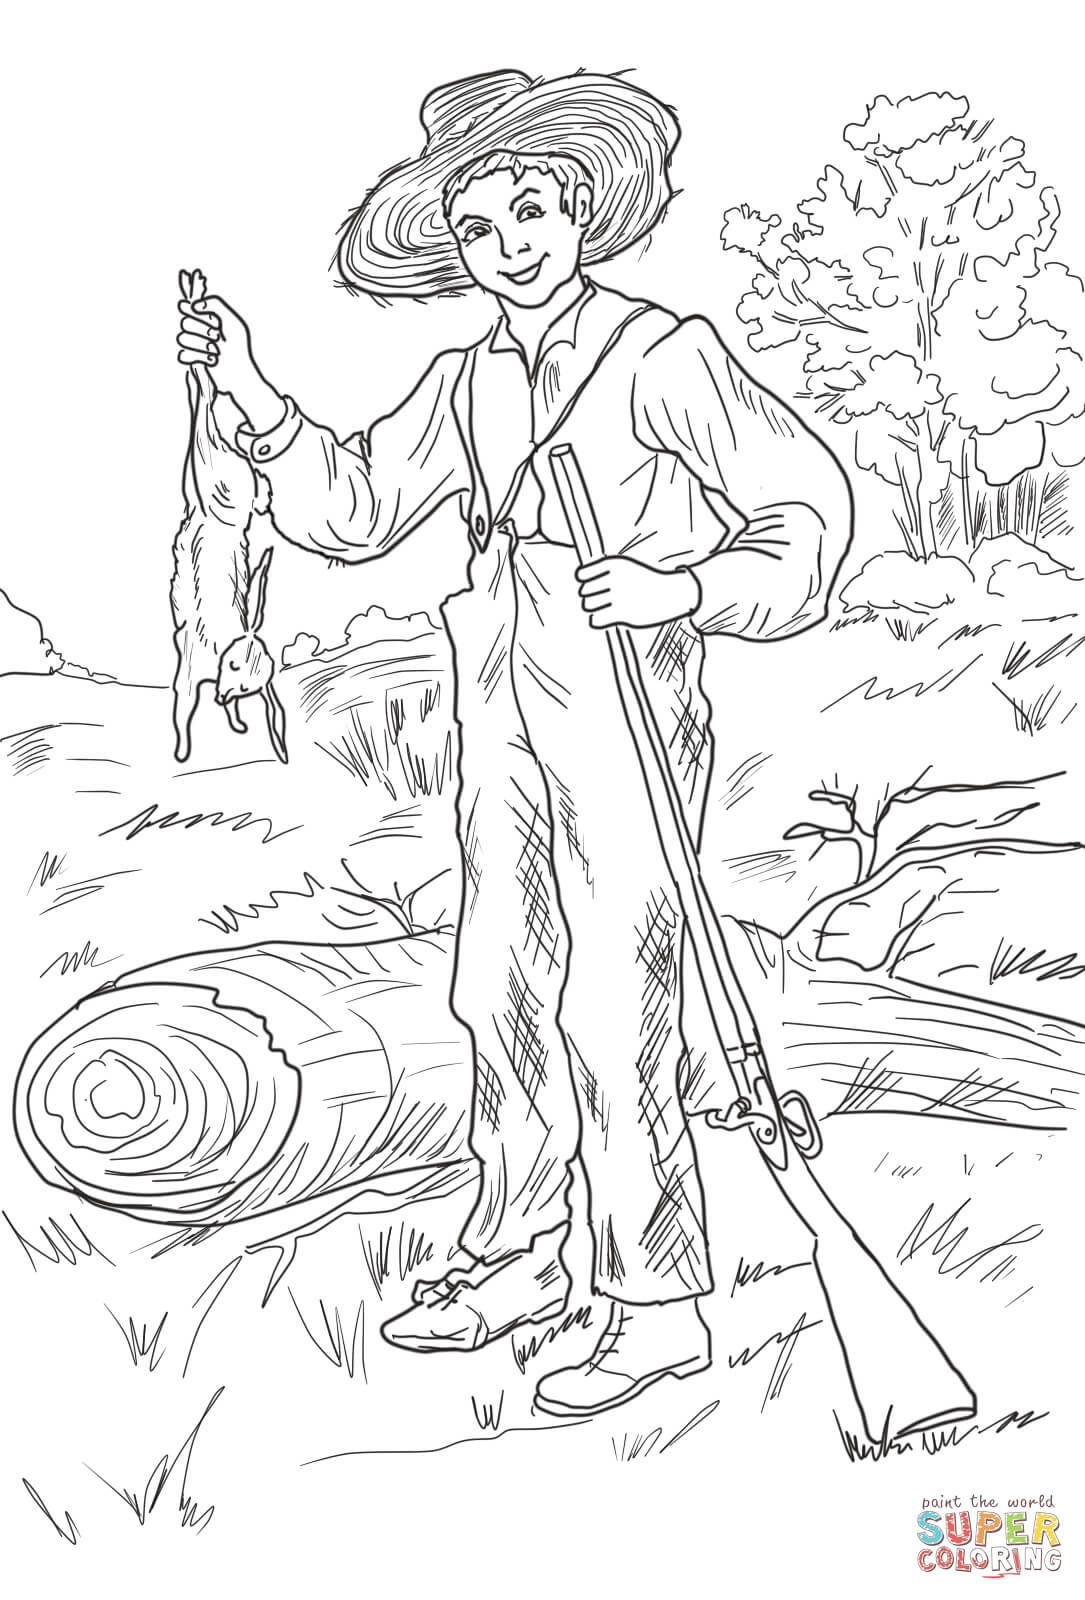 Huckleberry Finn With Rabbit Super Coloring Huckleberry Finn Coloring Pages American History Lessons